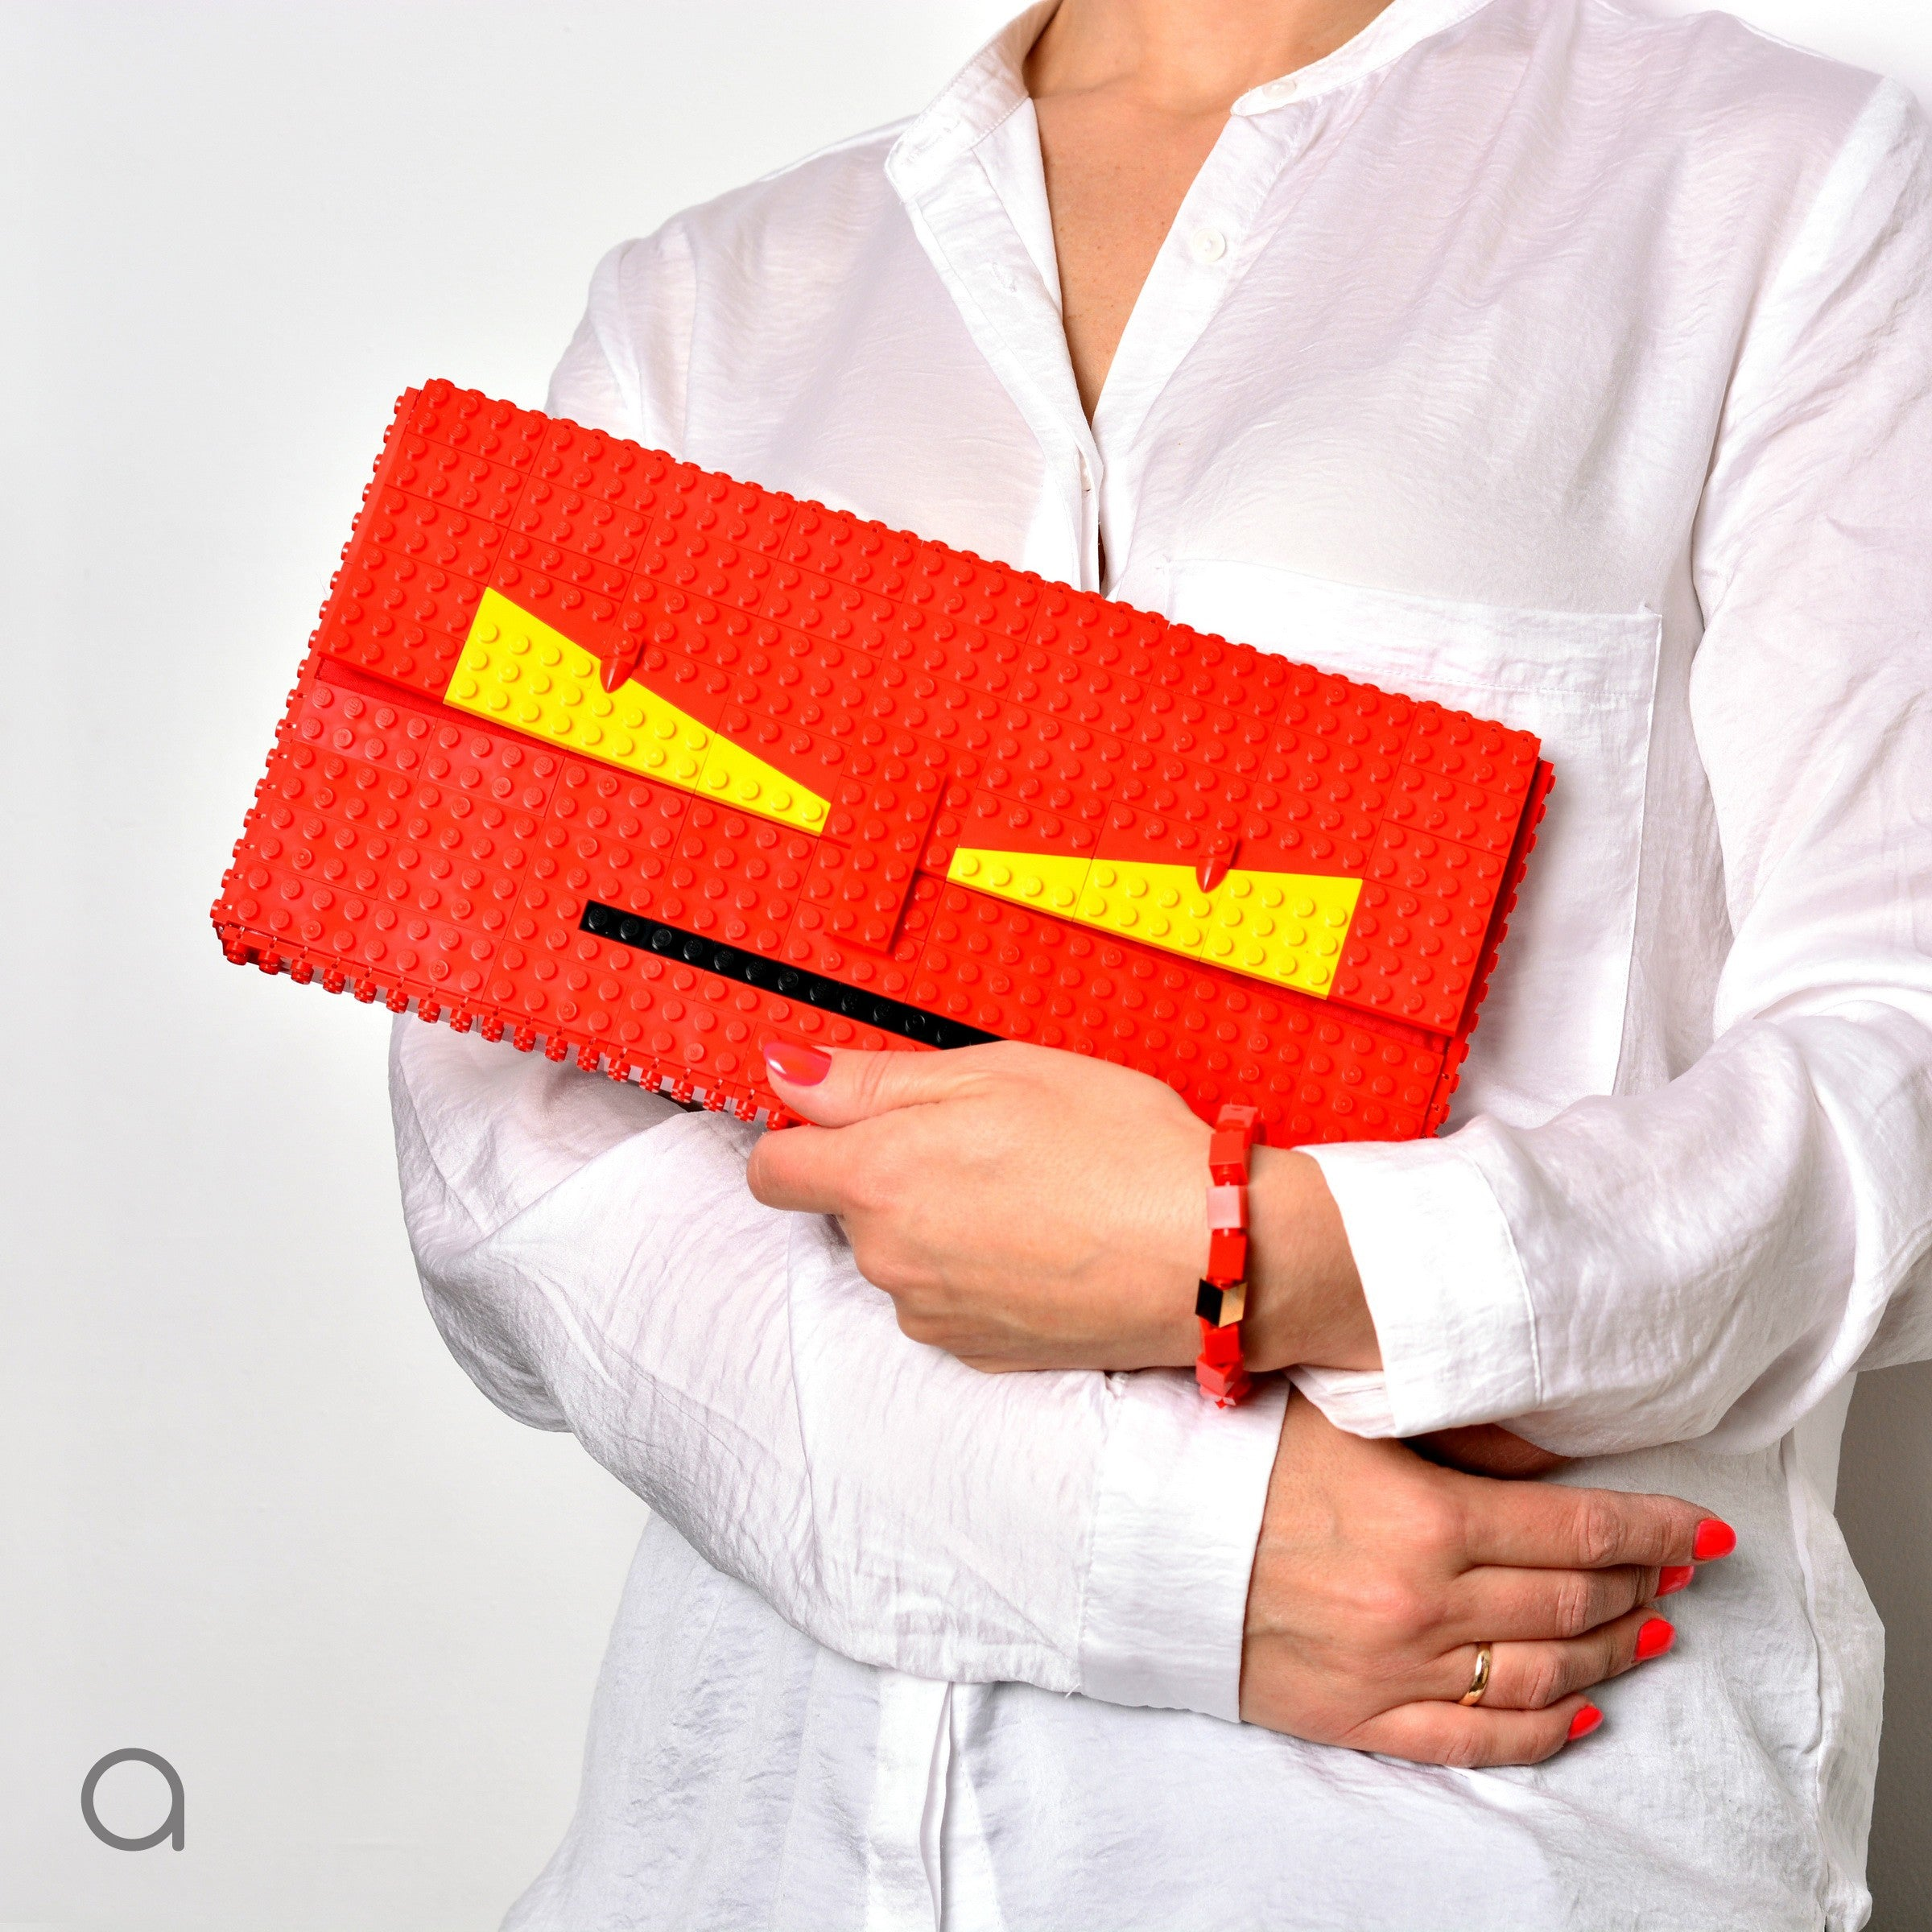 Red monster face oversize clutch